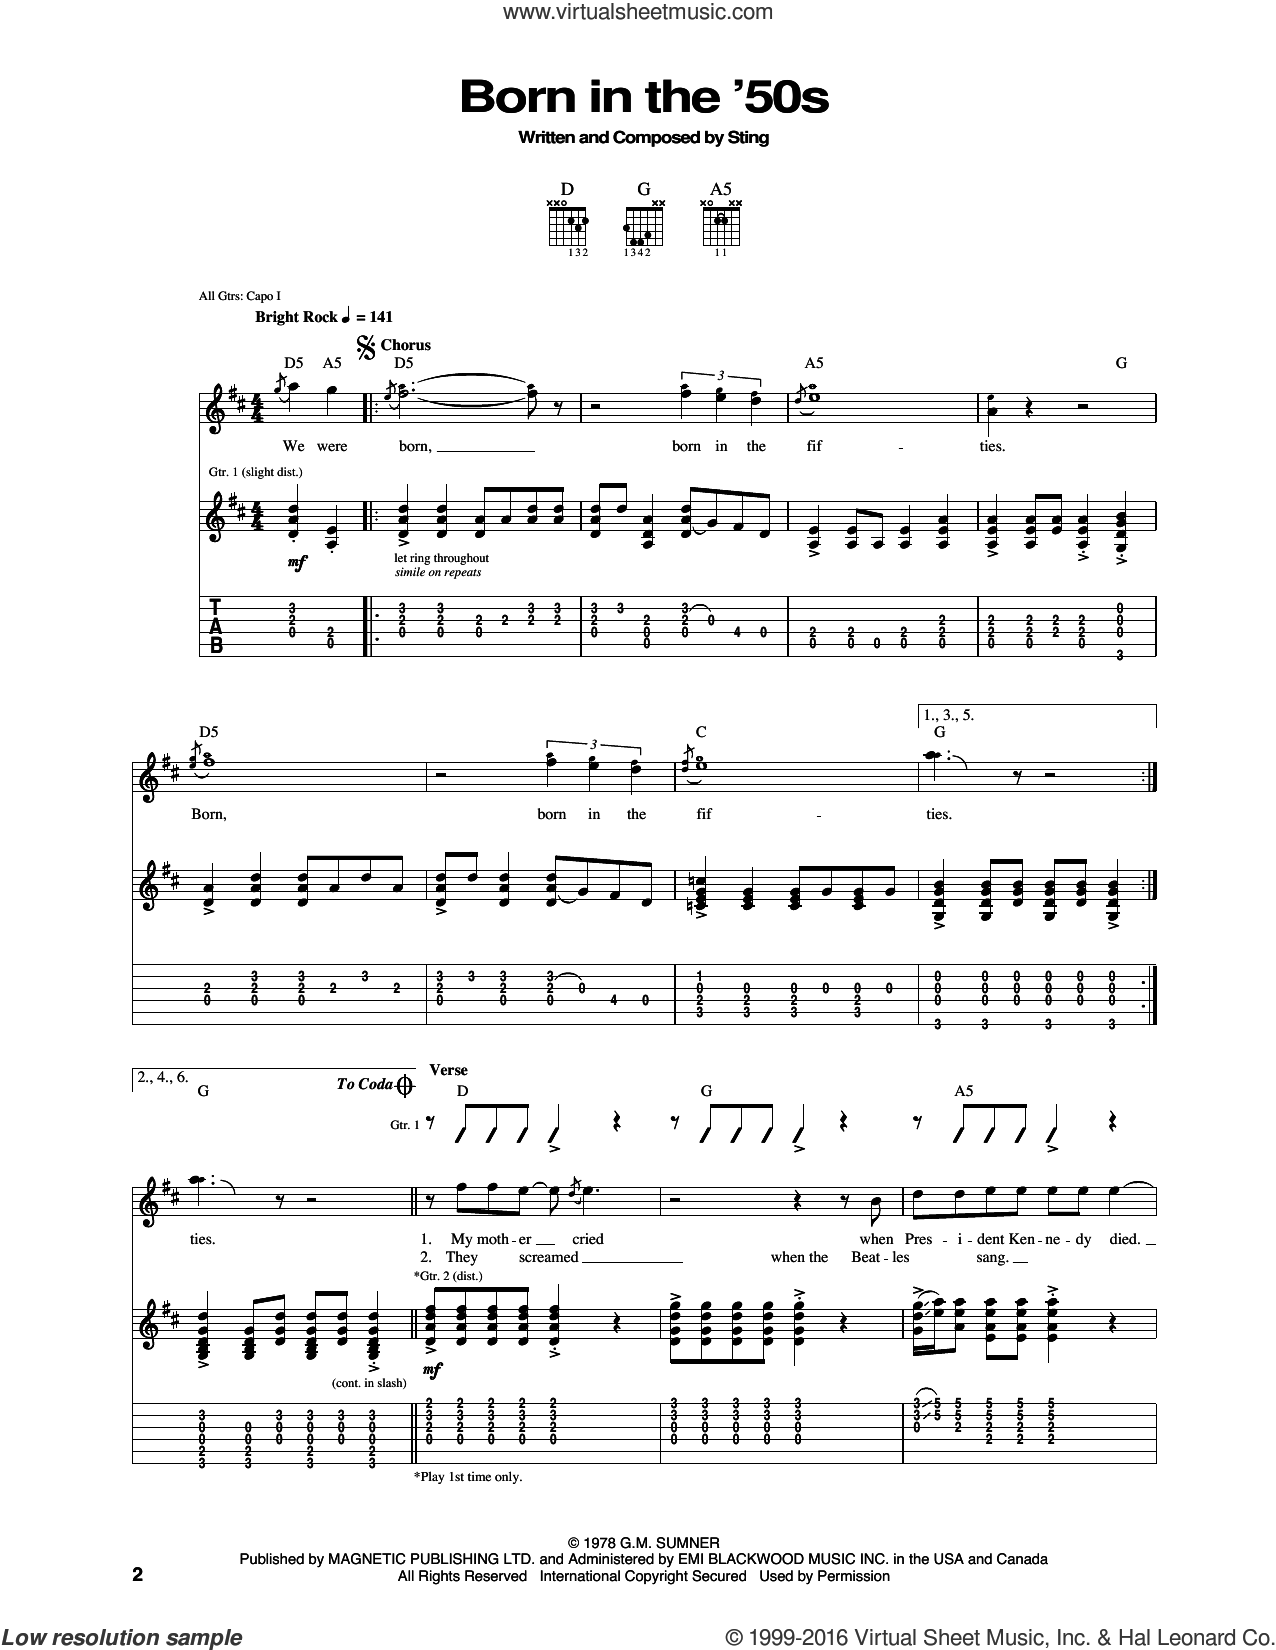 Born In The 50's sheet music for guitar (tablature) by The Police and Sting, intermediate